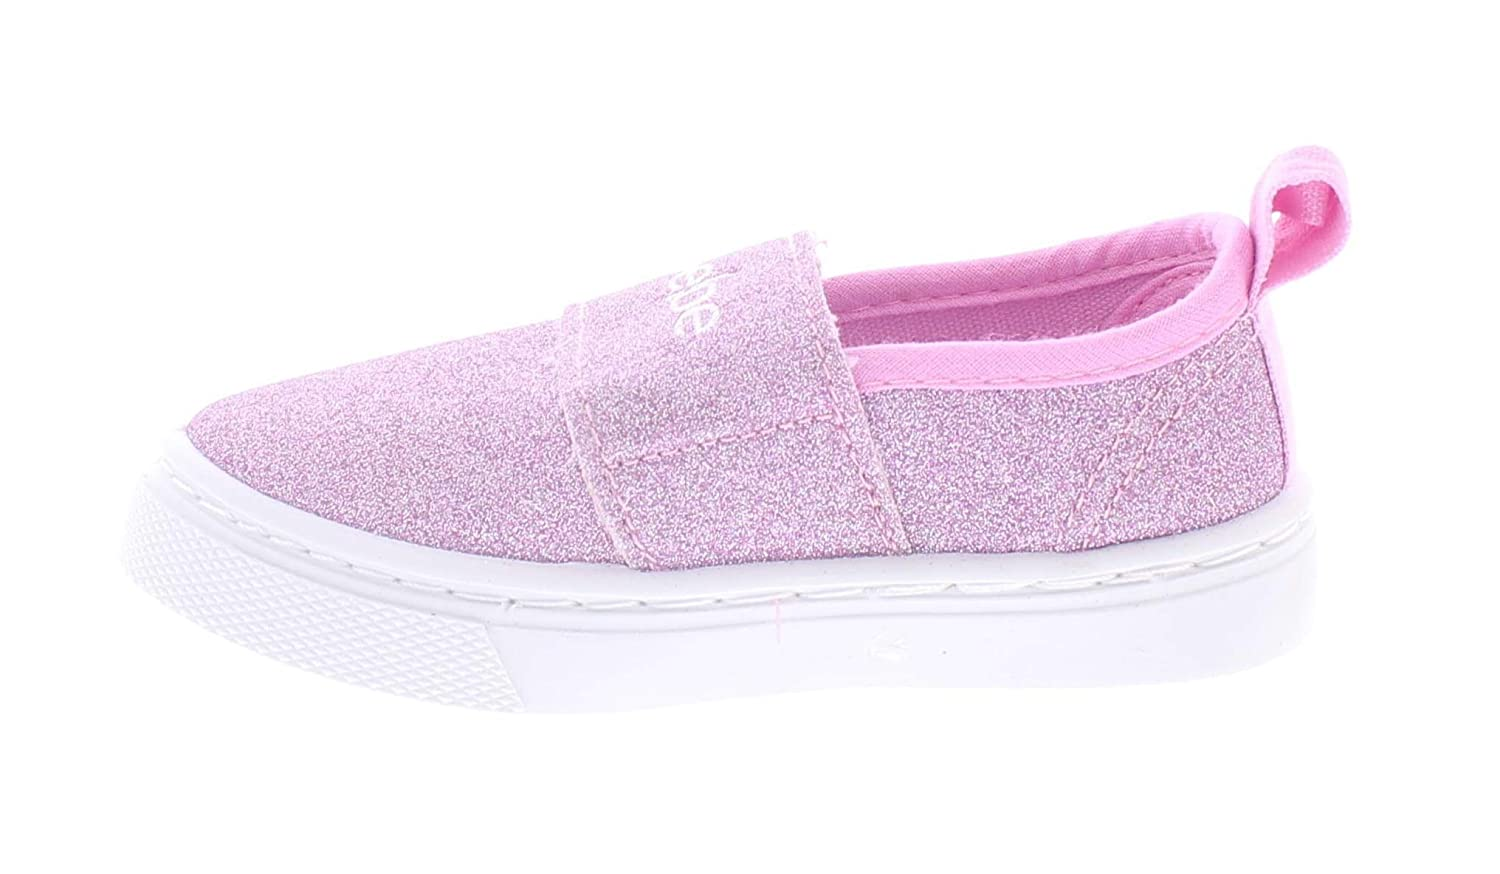 nkfbx Cute Unicorn Fashion Flat Sneakers for Girls Exercising